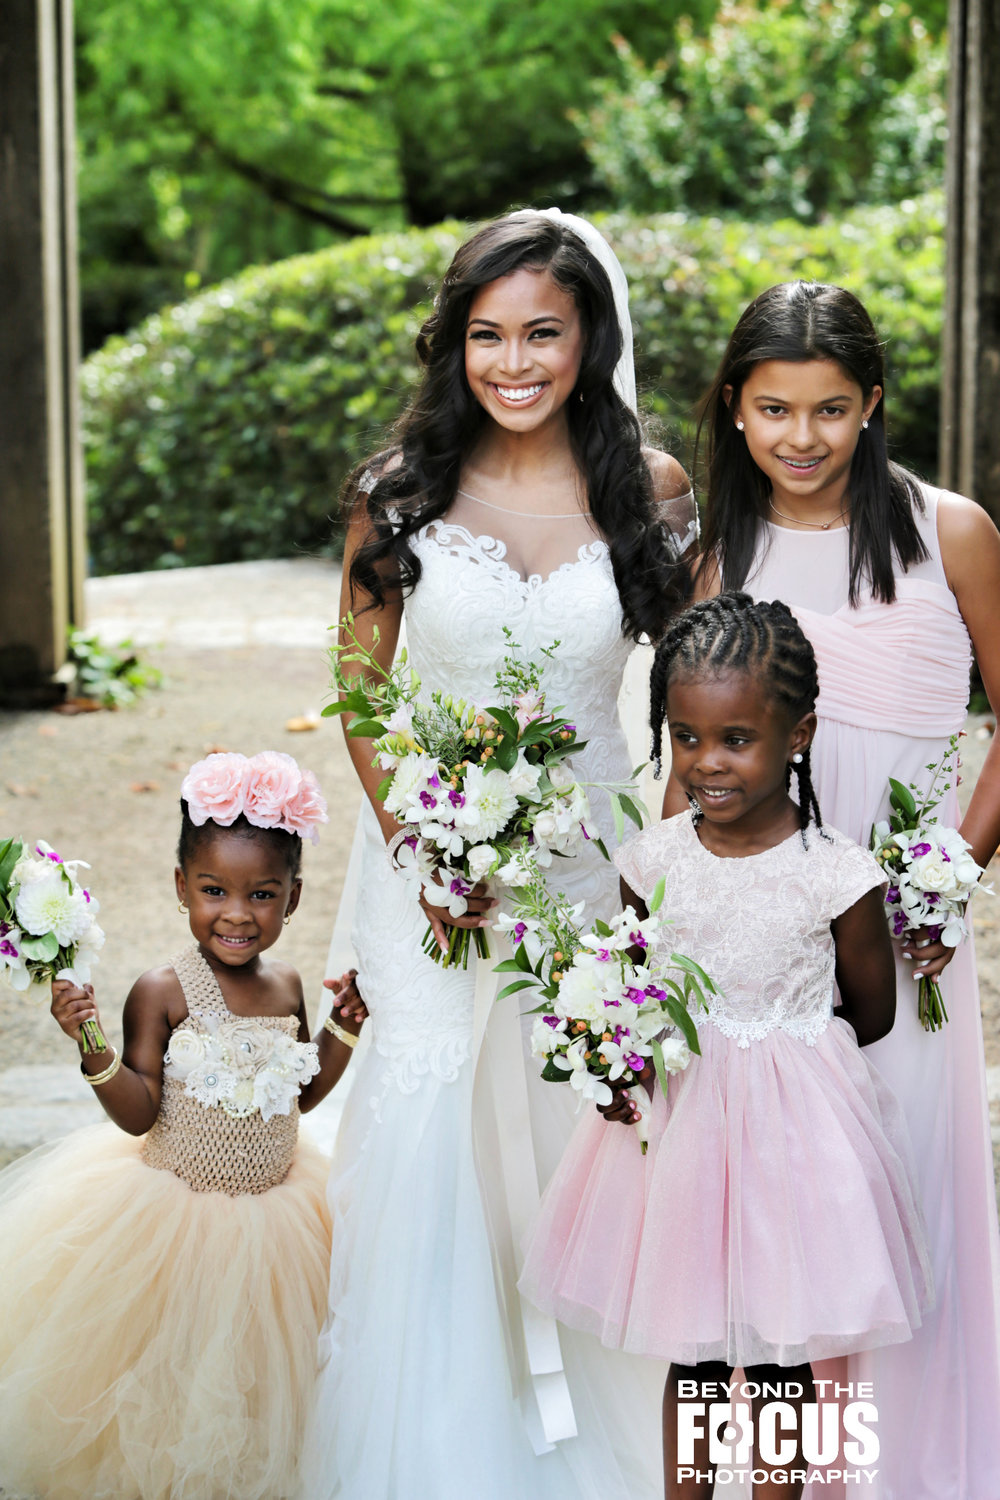 Christan_Imani_WeddingPartyFamily_W_3.jpg